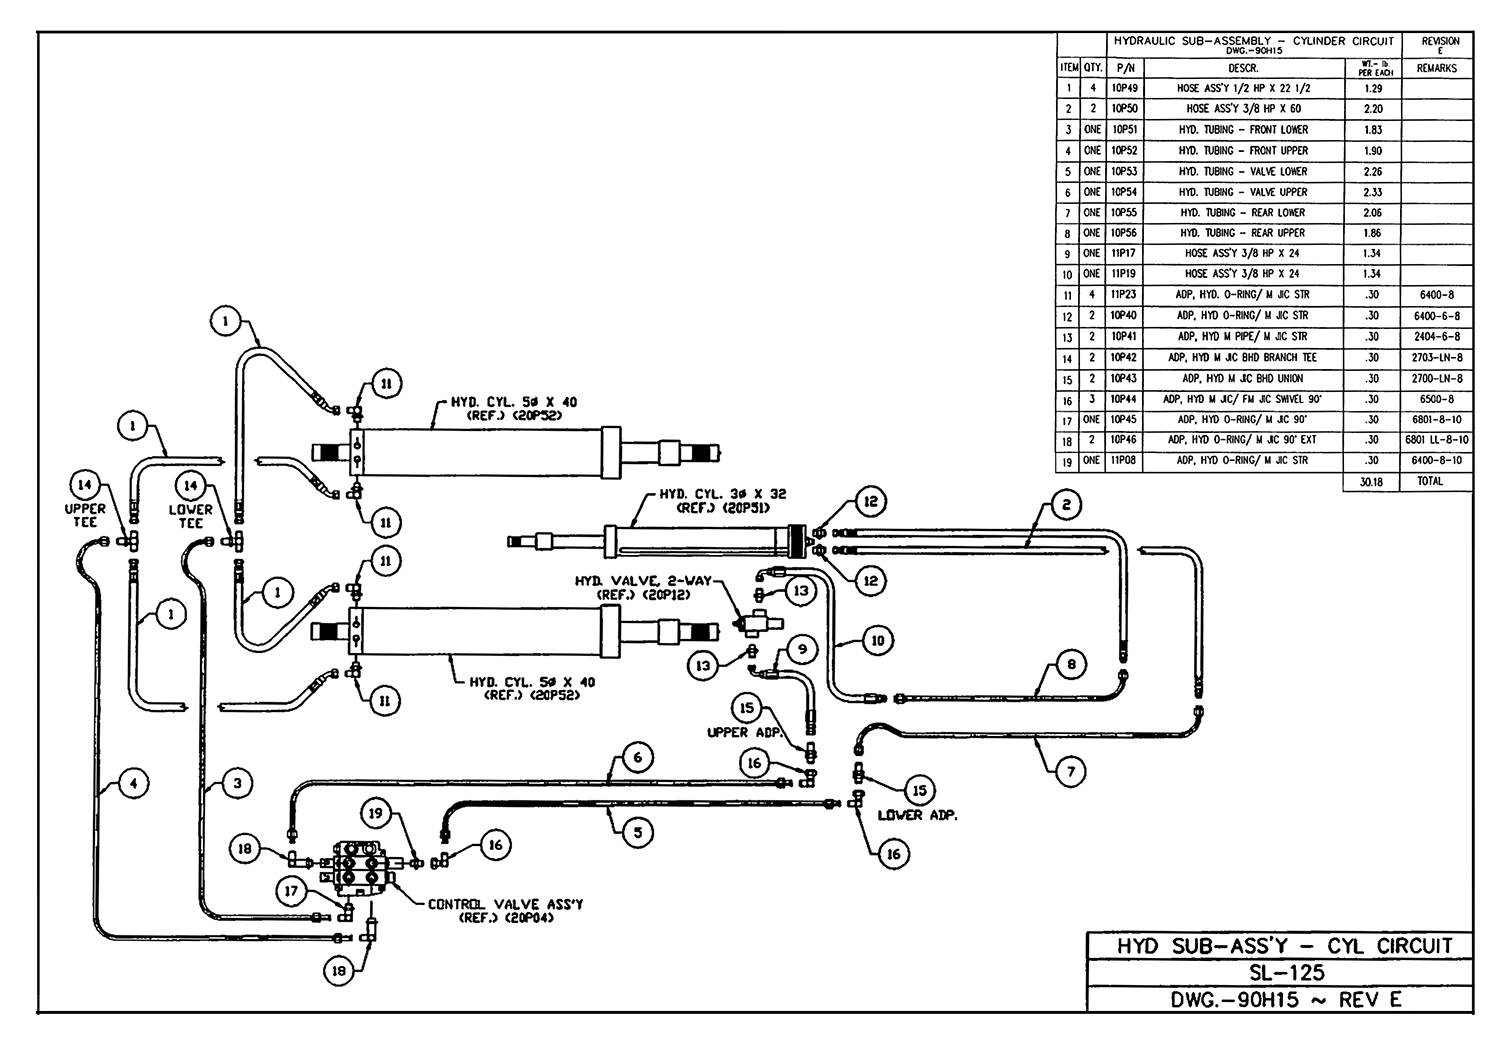 Intercon Truck Equipment Online Store 6400 Converter Wiring Diagram Sl 125 Hydraulic Sub Assembly Cylinder Circuit